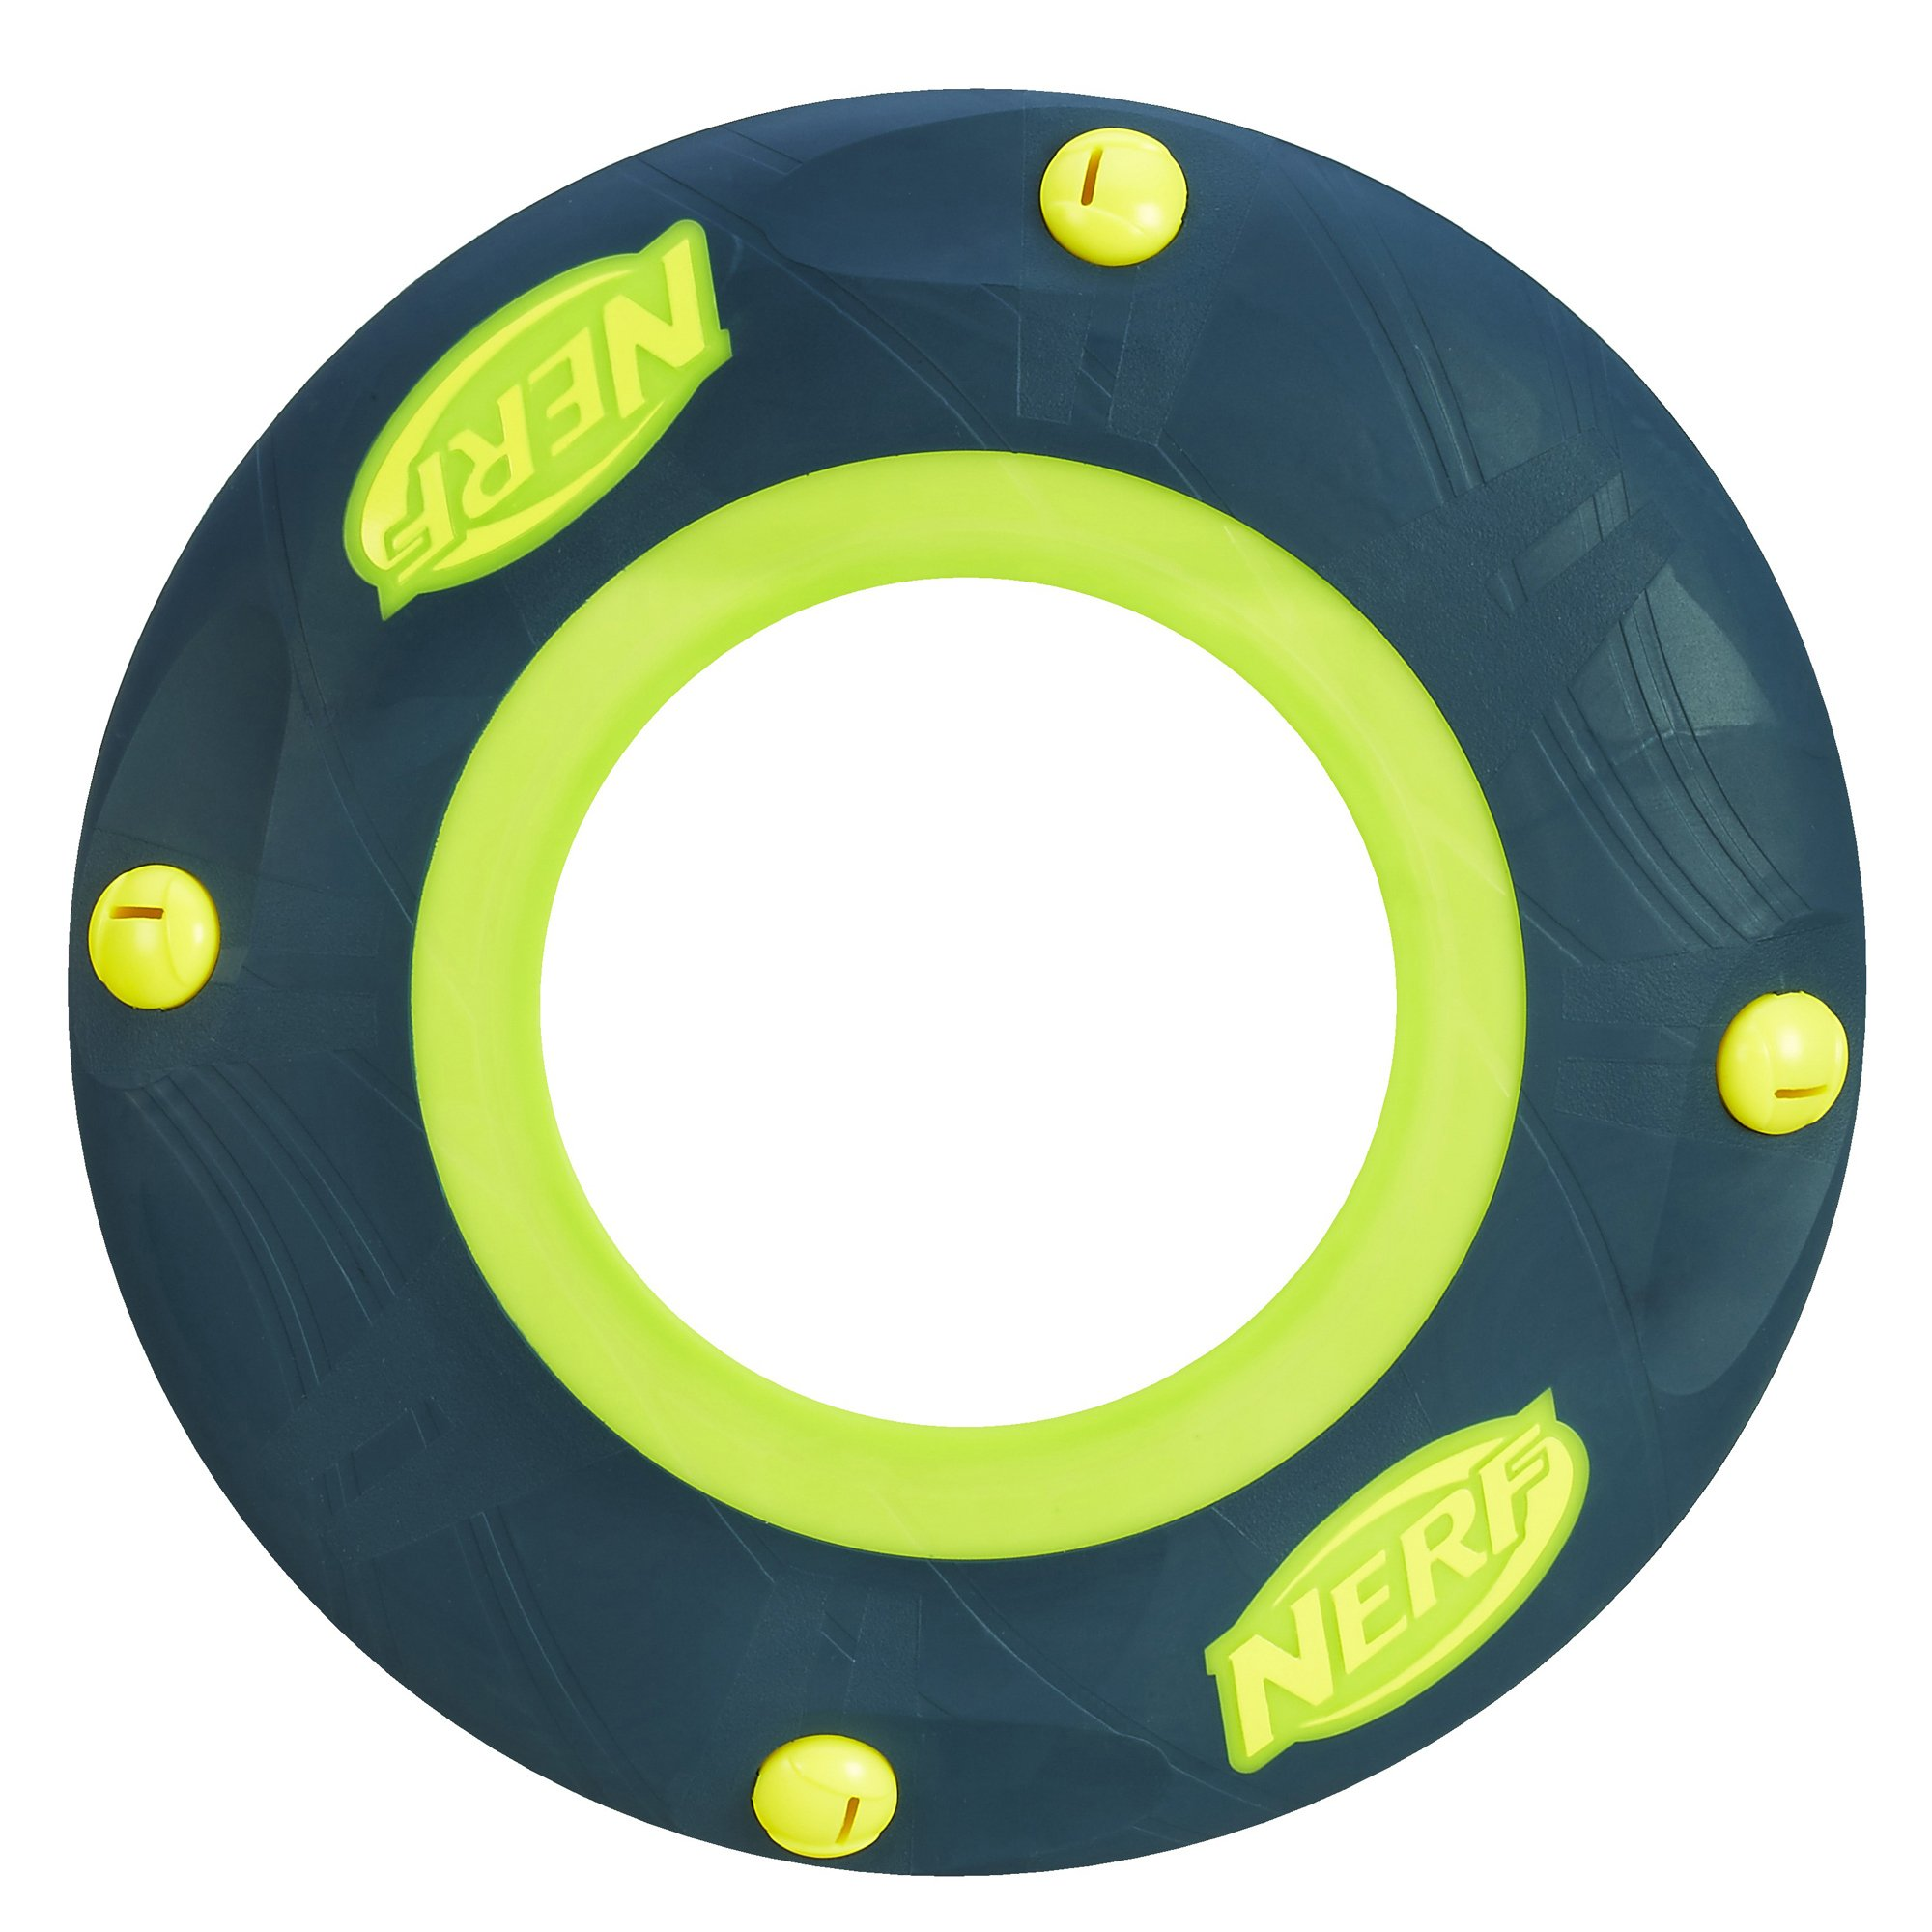 Nerf N-Sports Sonic Howler Flying Disk by NERF